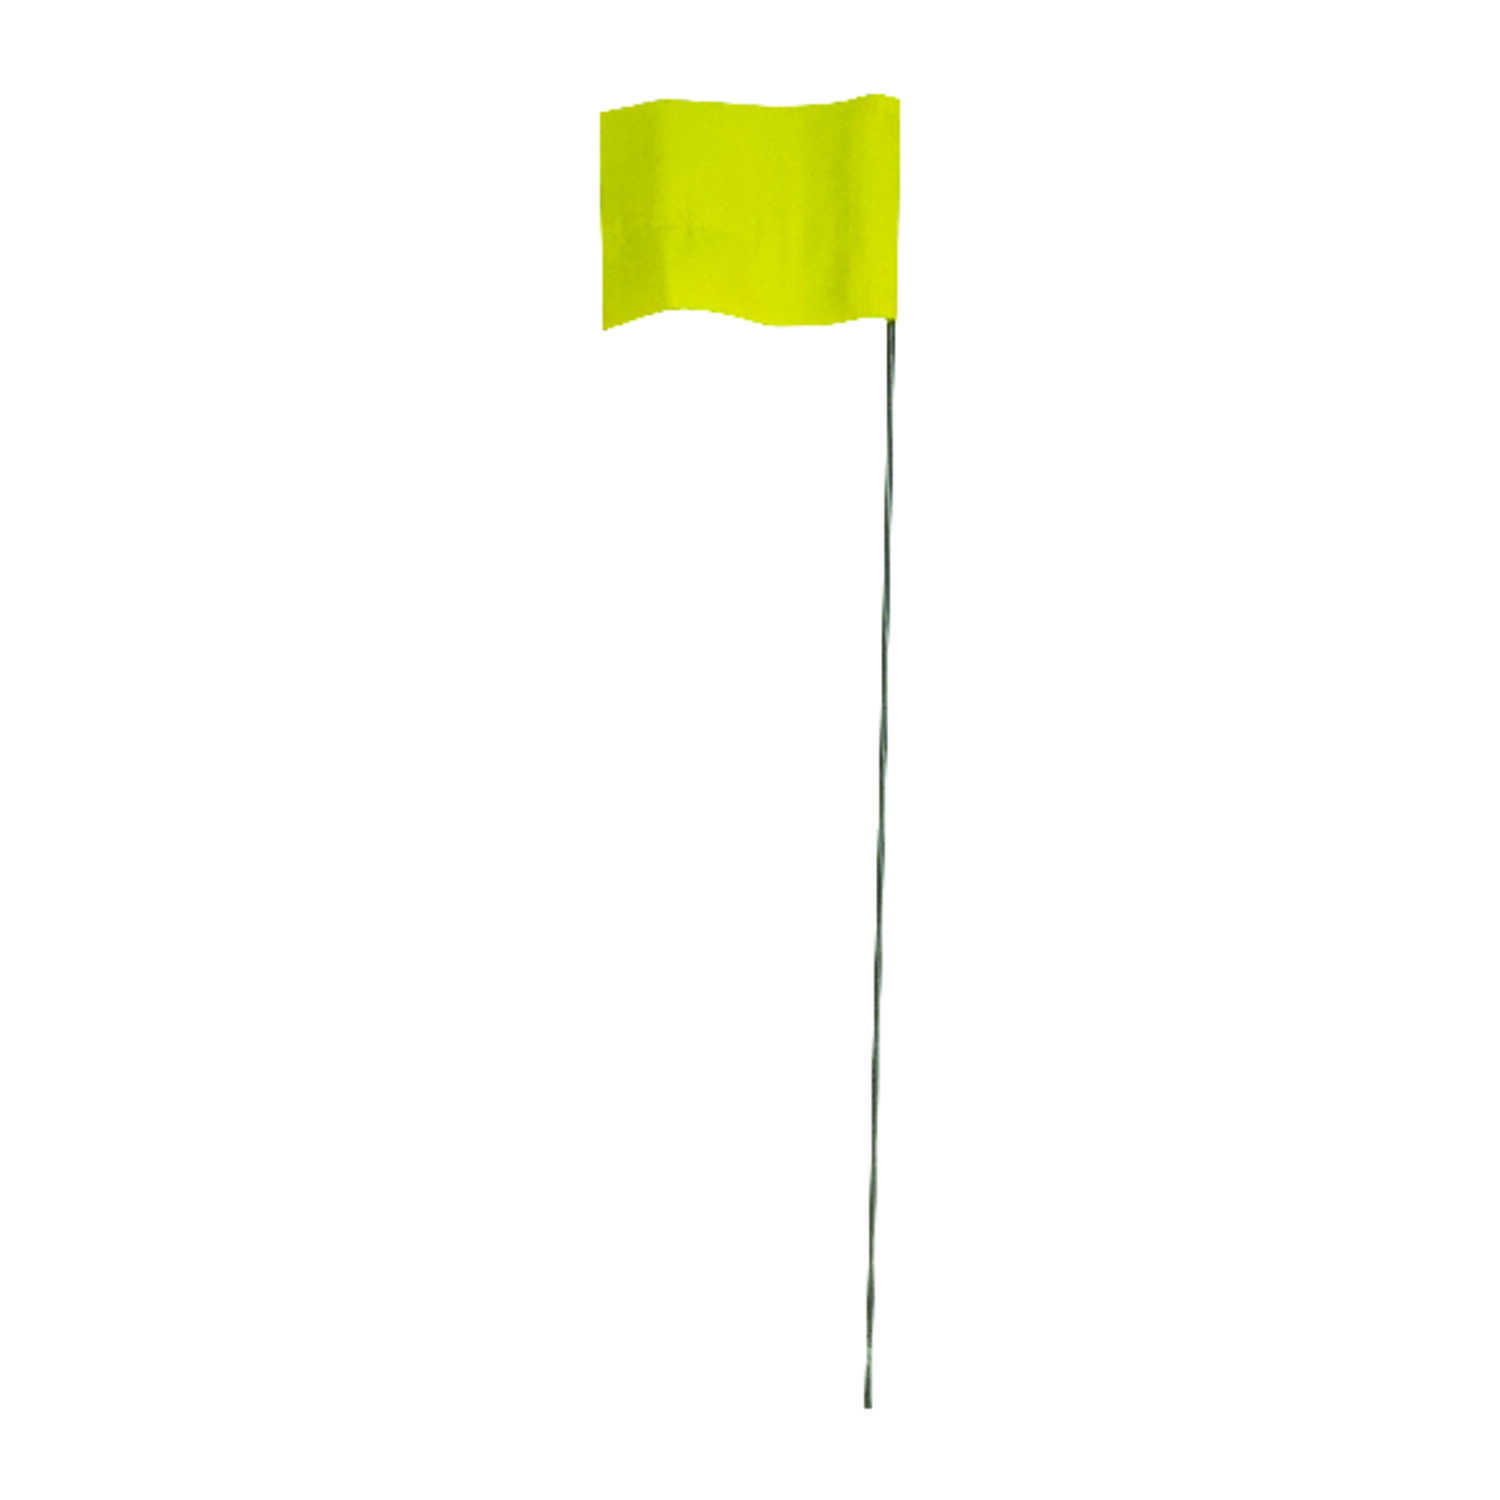 C.H. Hanson  15 in. Yellow  Marking Flags  Polyvinyl  100 pk